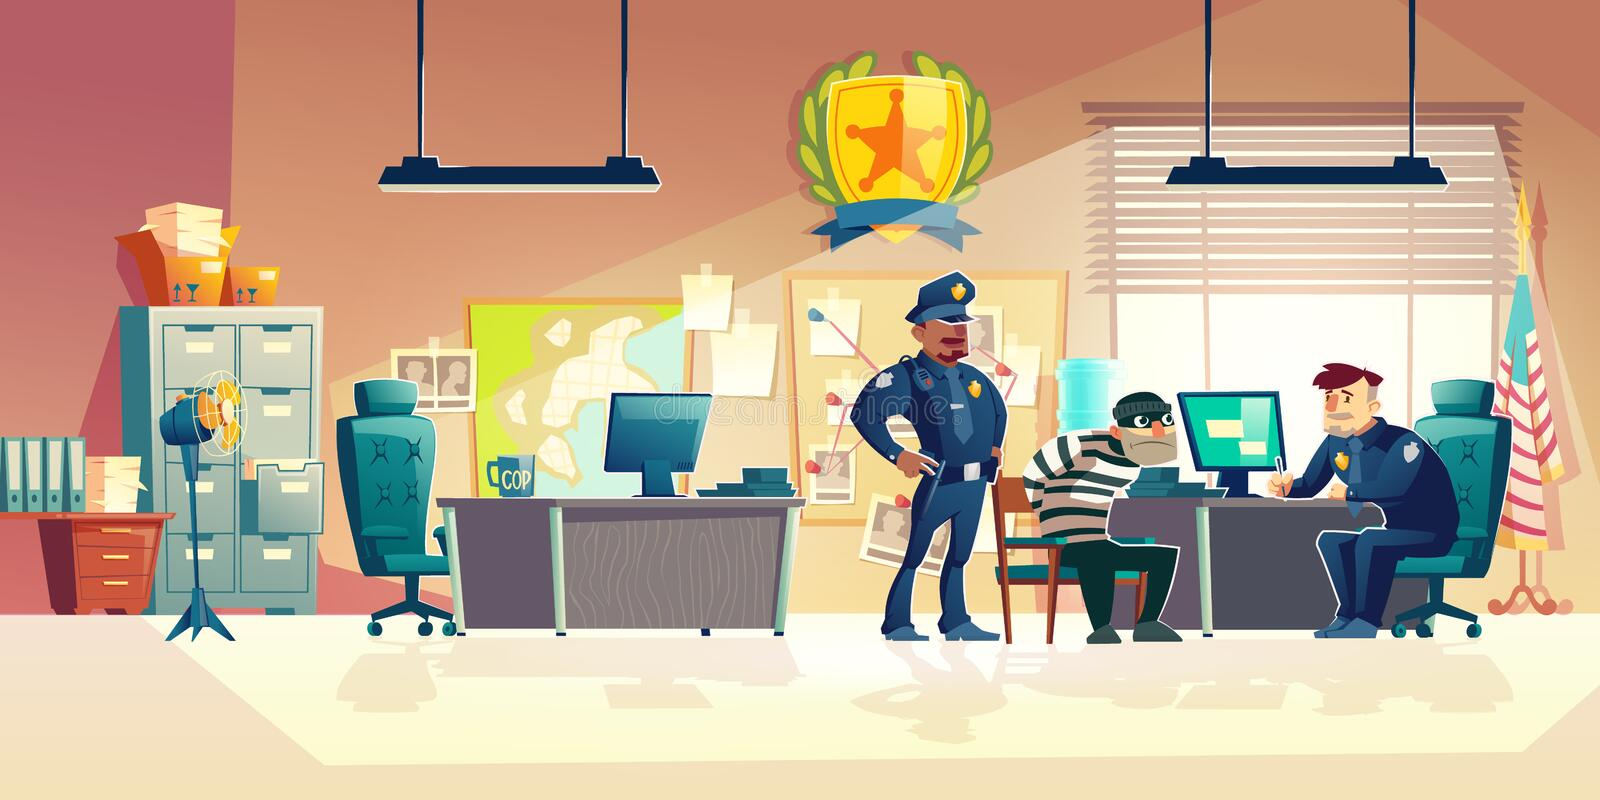 Criminal interrogation in police cartoon vector. Criminal interrogation, questioning in police station. Police officers asking questions arrested thief in office stock illustration